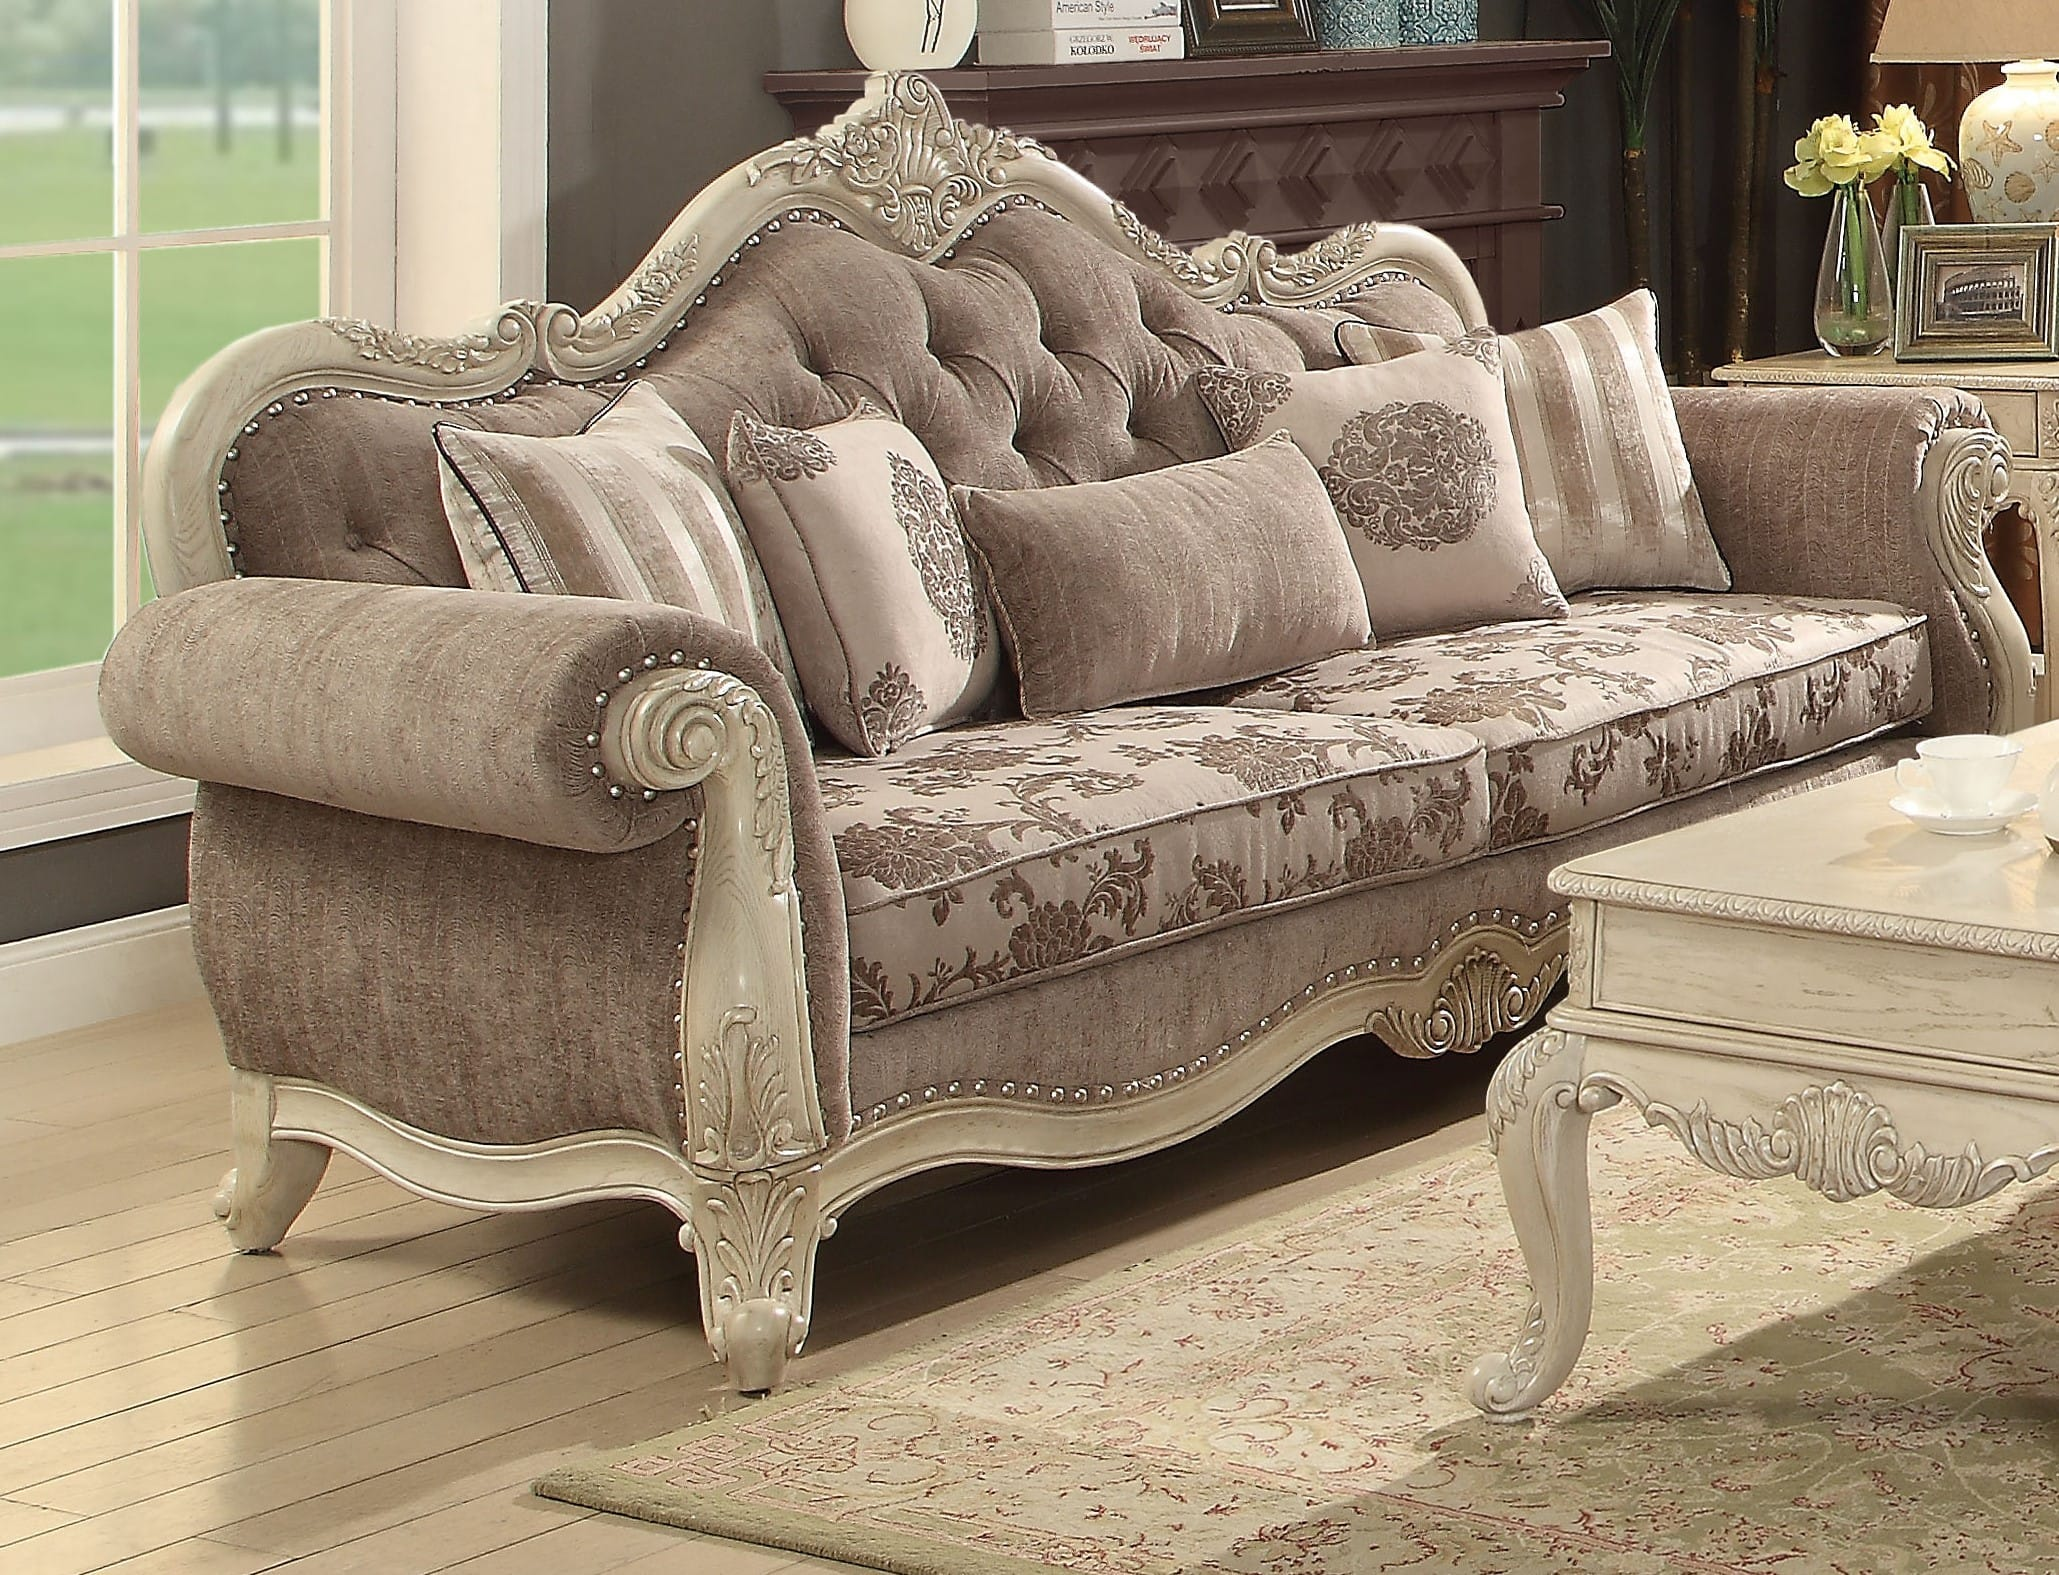 Incredible Acme Furniture Ragenardus Gray Fabric Antique White Sofa With 5 Pillows Reviews Goedekers Com Squirreltailoven Fun Painted Chair Ideas Images Squirreltailovenorg